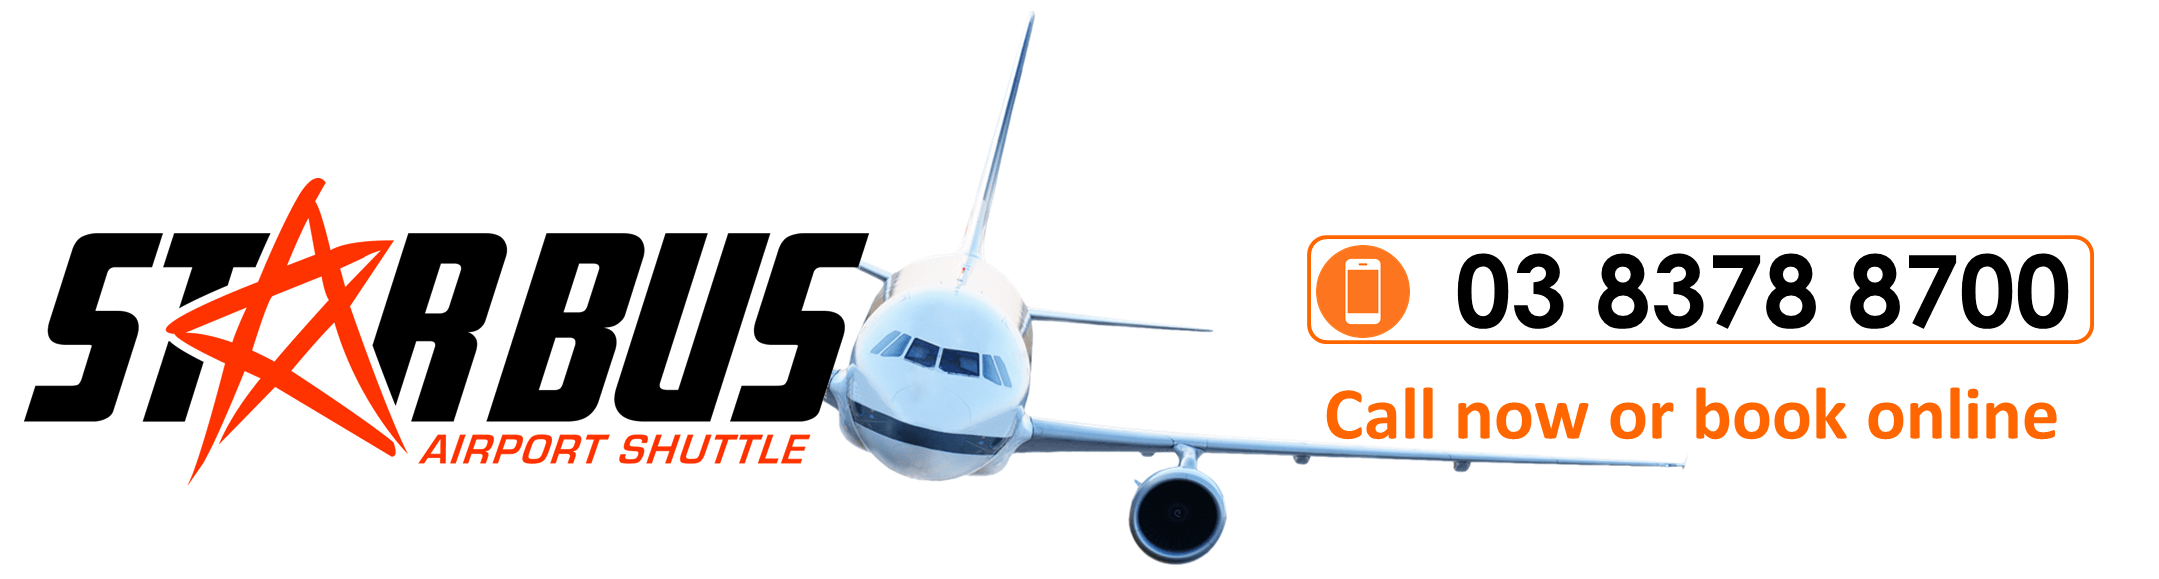 Melbourne Airport Shuttle Transfers